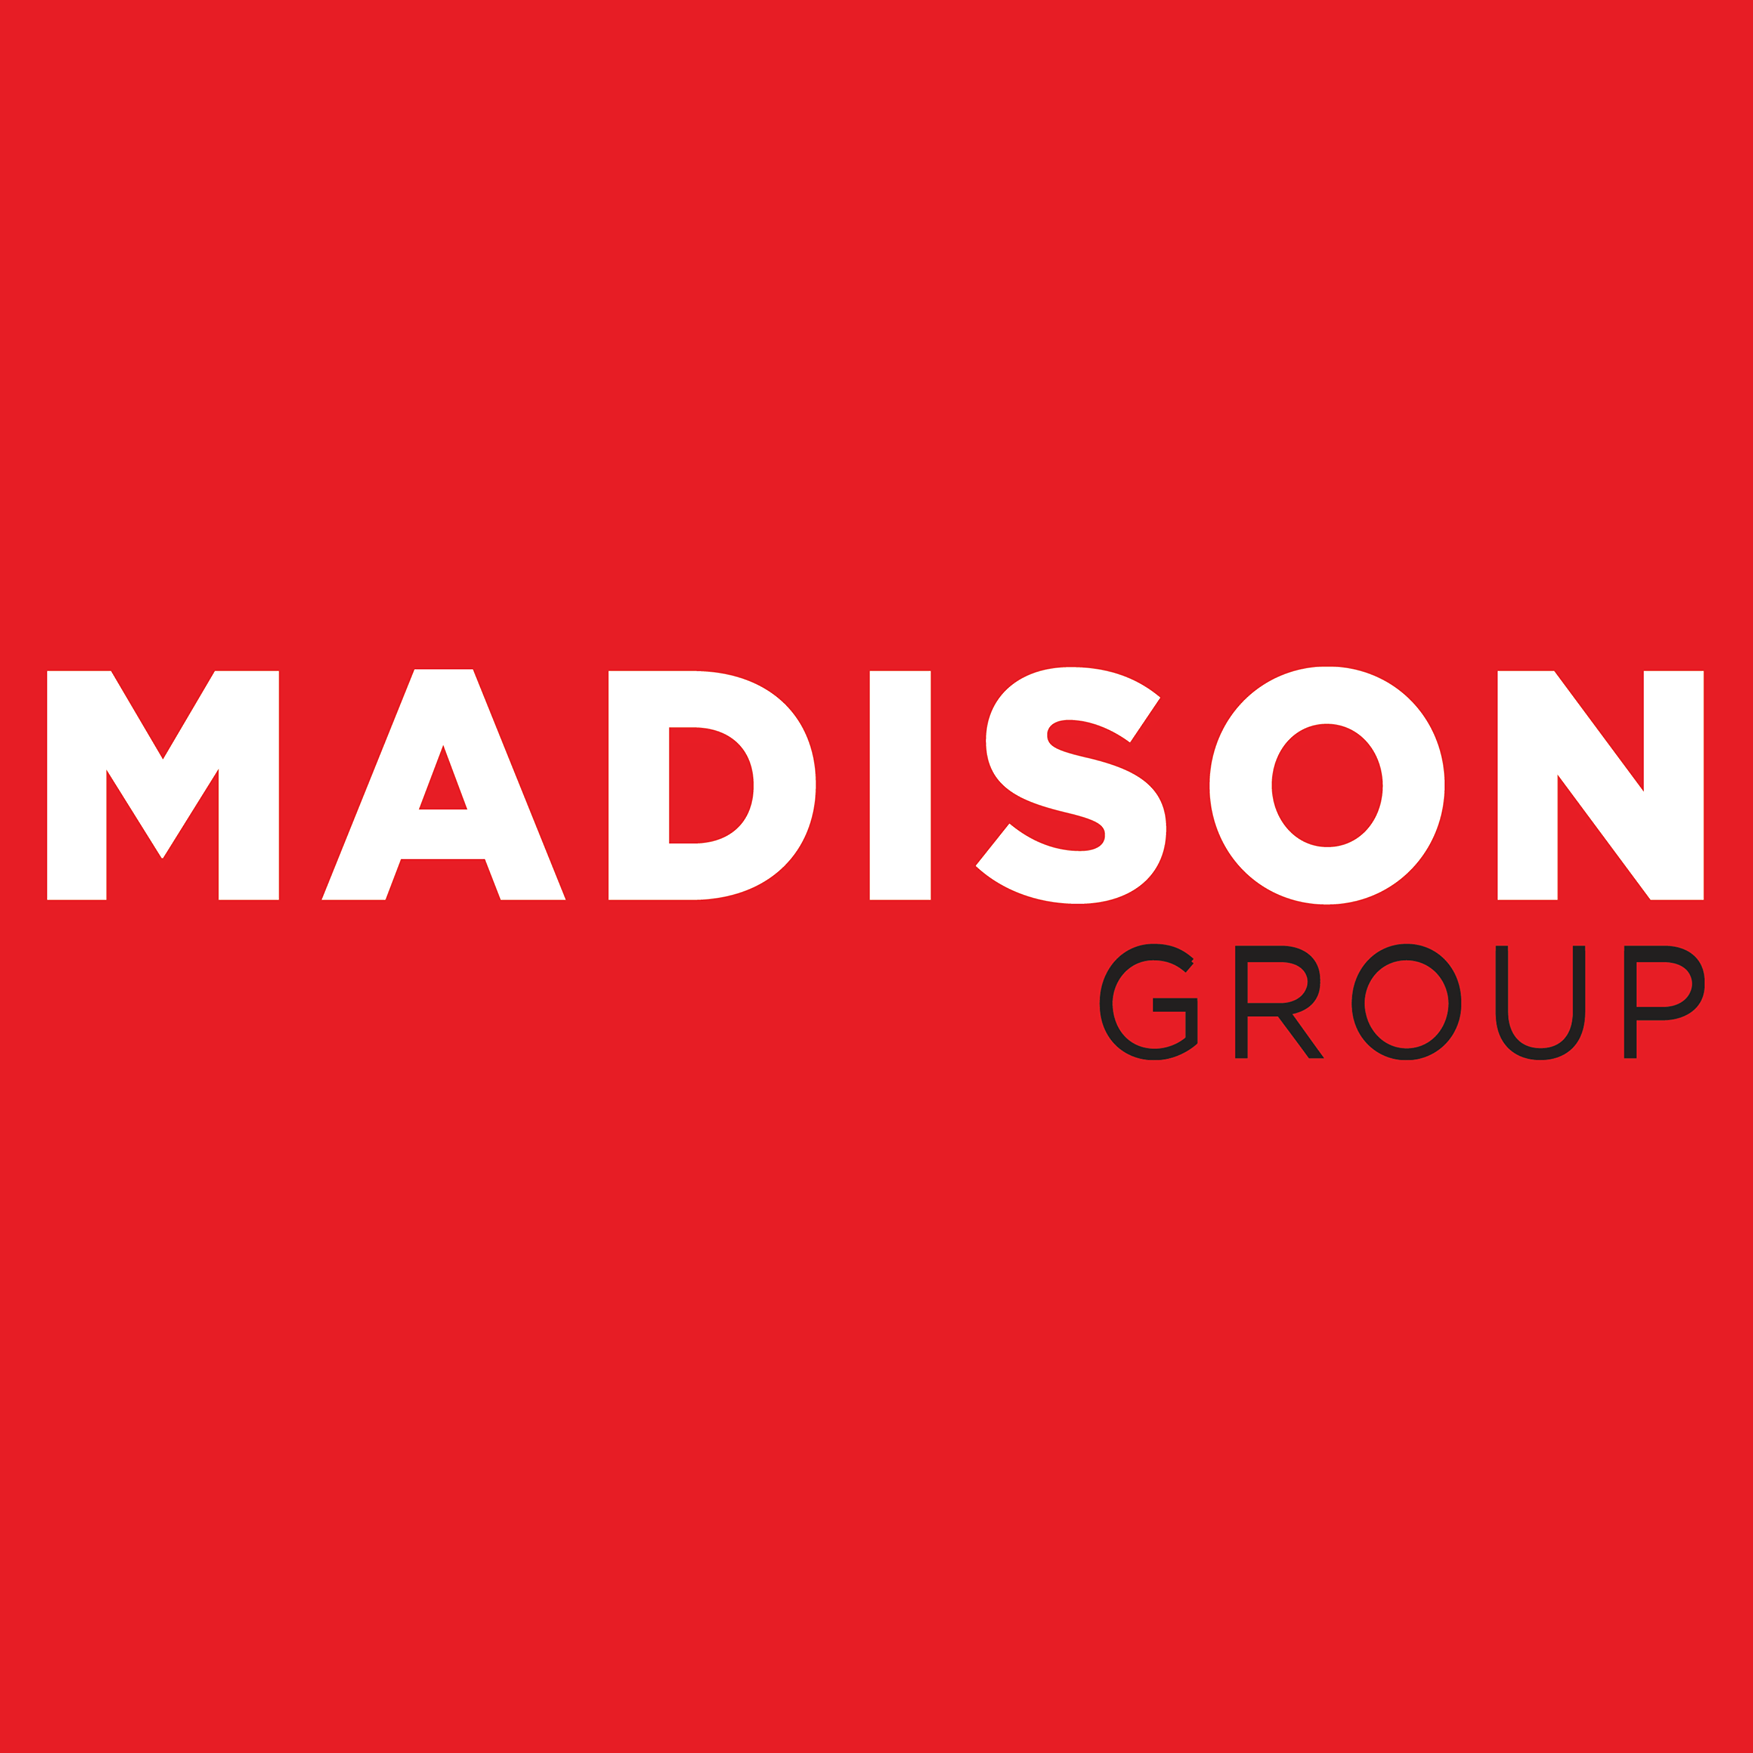 Madison group NU TOWNS